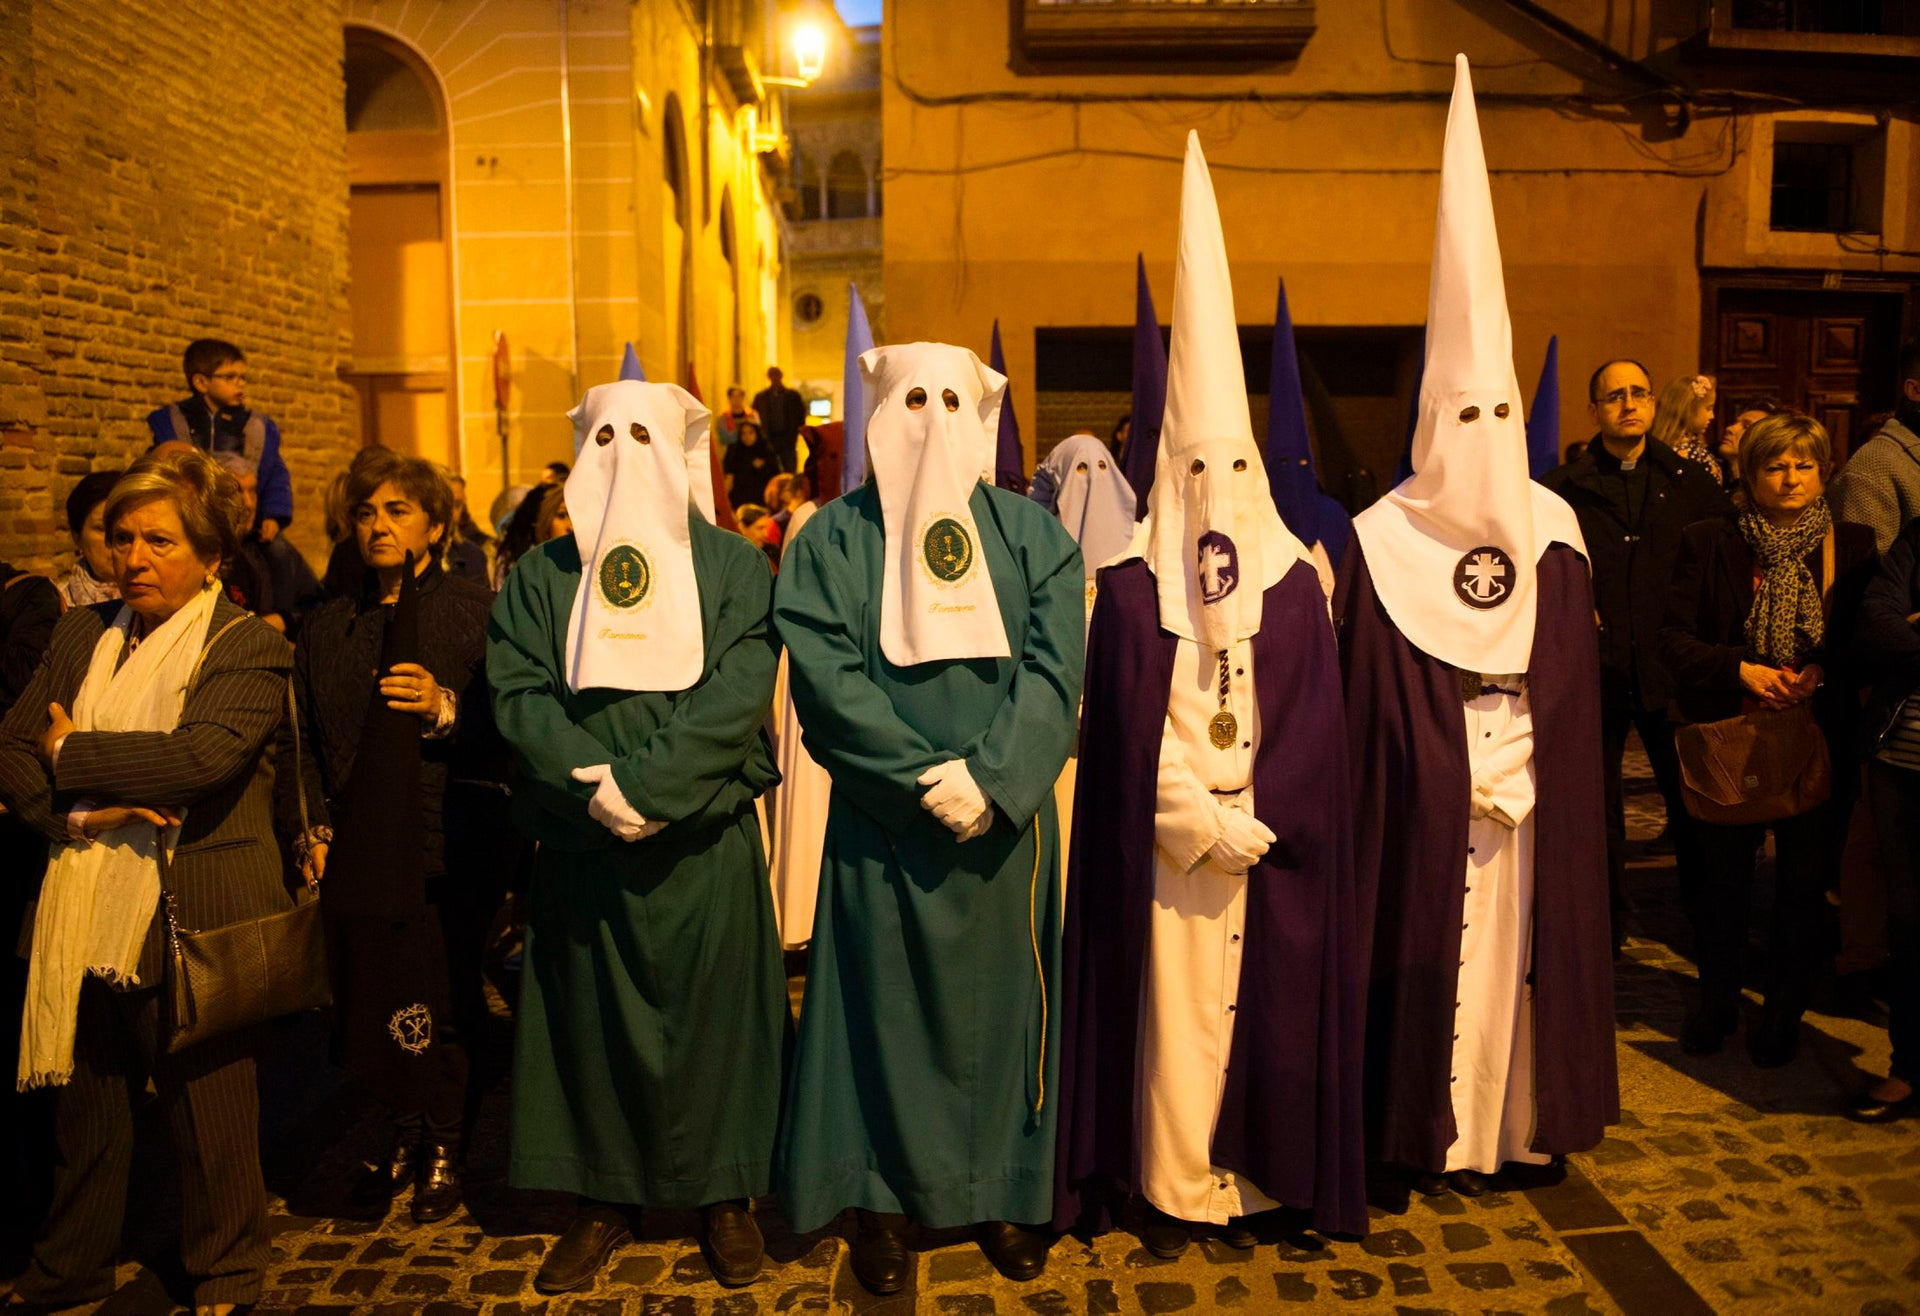 Penitents of the 'Silencio del Santisimo Cristo del Rebate' brotherhood take part during a Holy Week procession in the Spanish village of Tarazona on April 11, 2017.